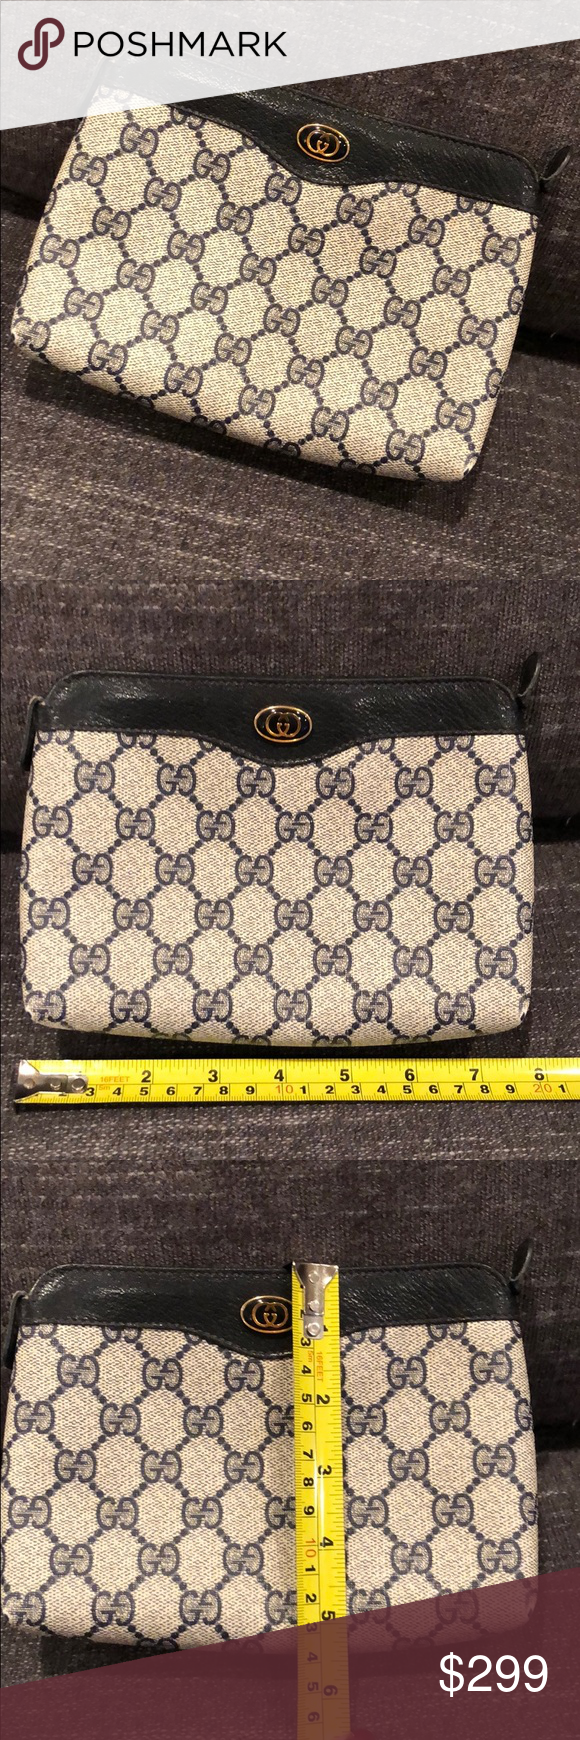 Gucci vintage makeup bag! Rare find! Vintage gucci